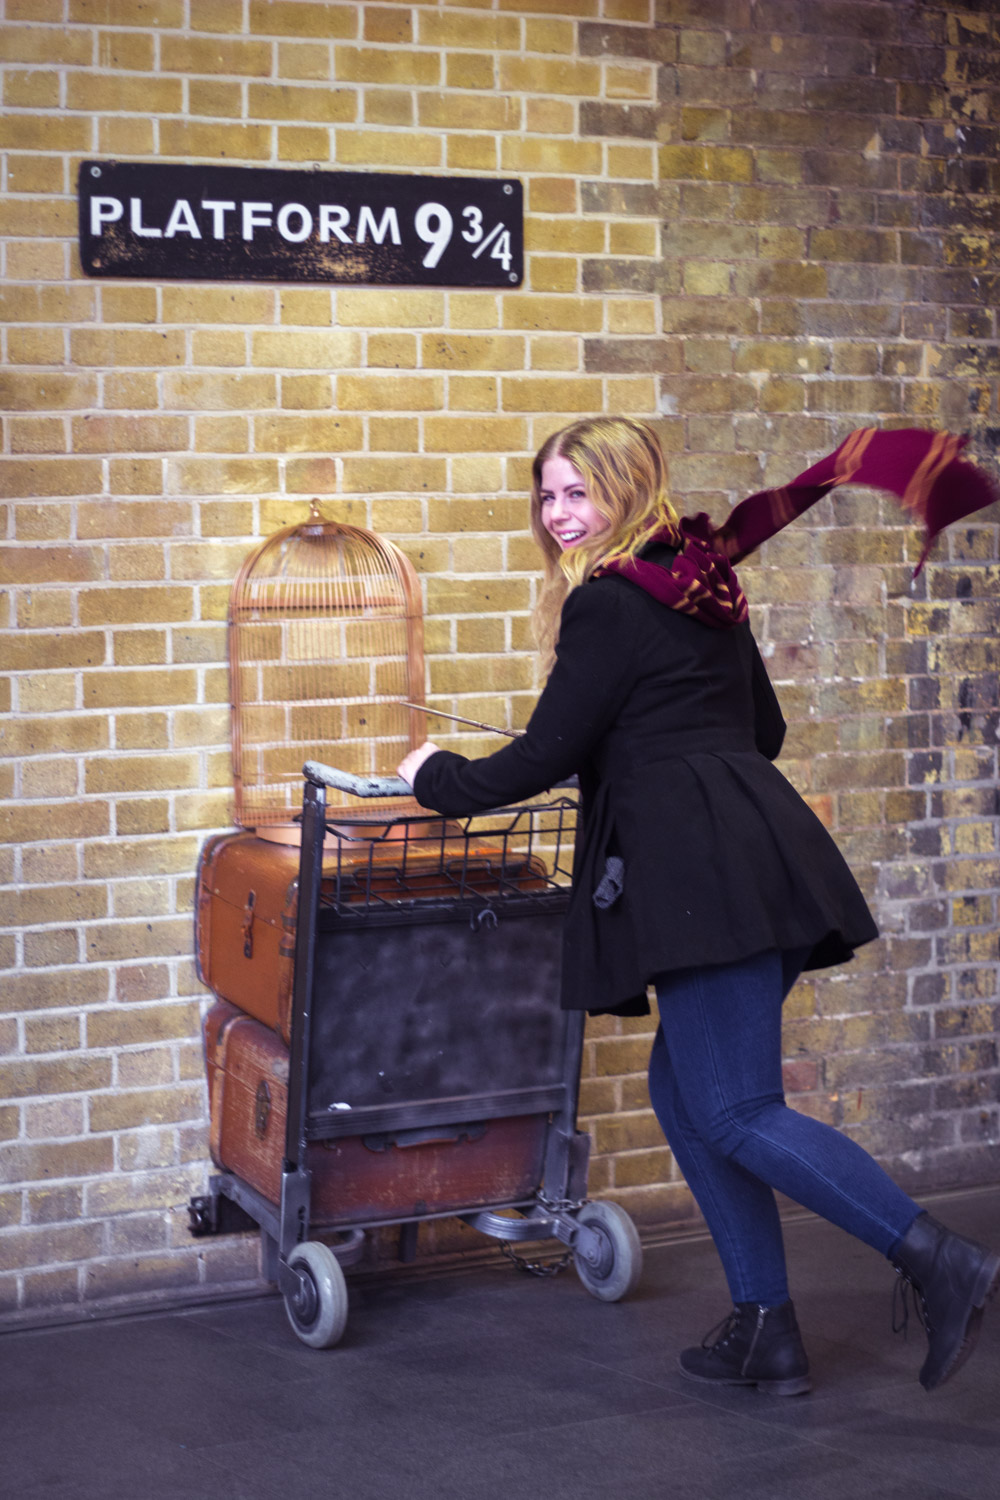 The trolley in Platform 9 and 3/4 at Kings Cross in London